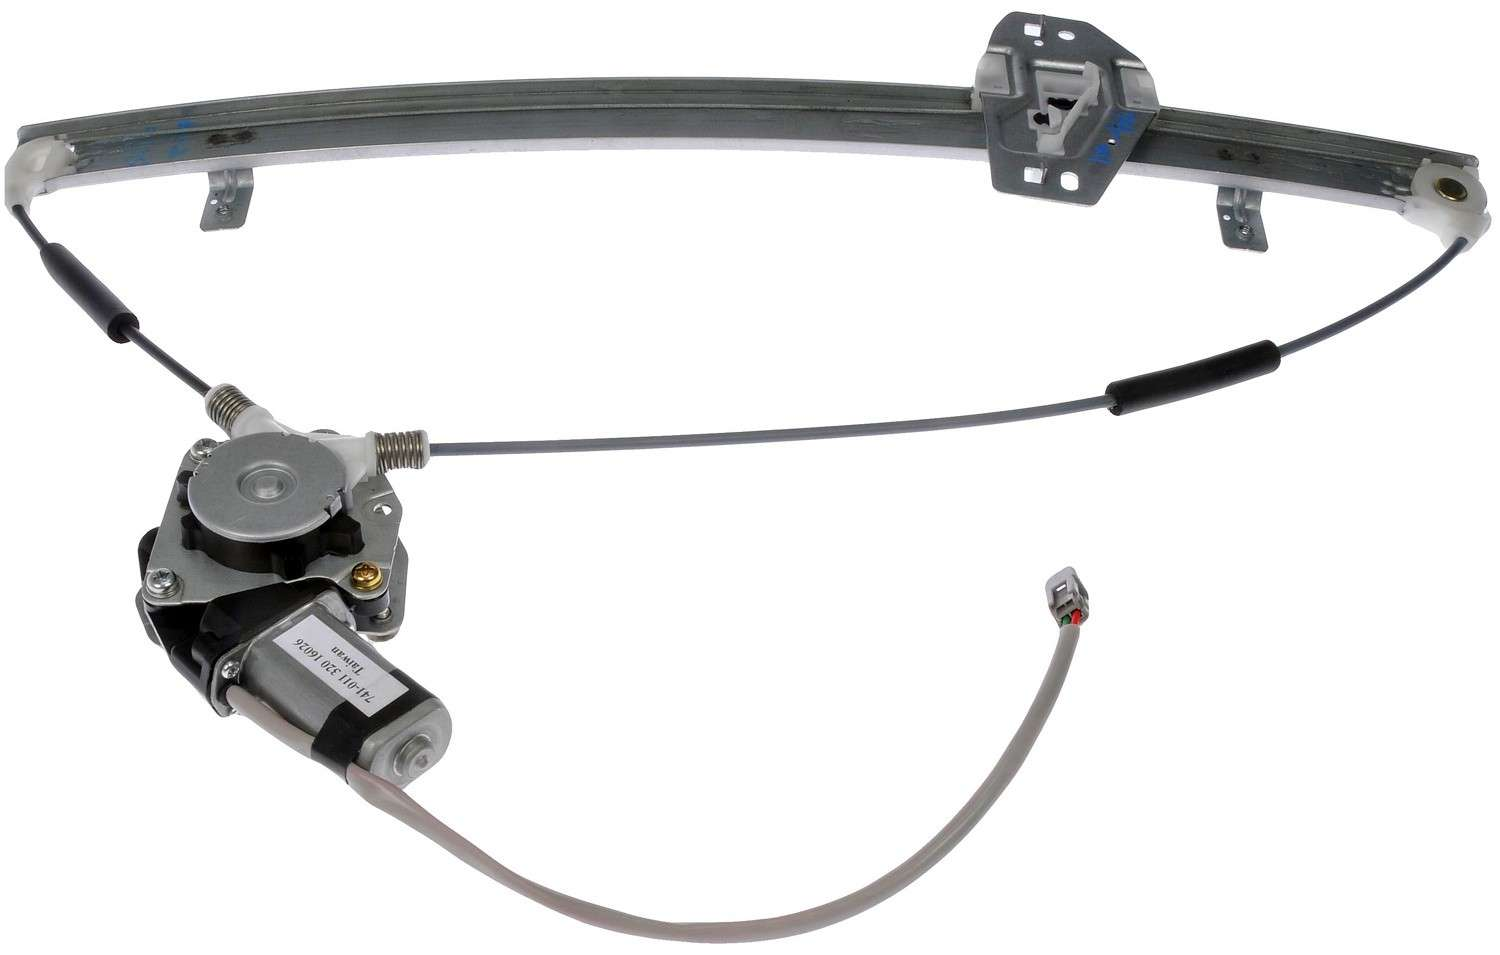 DORMAN OE SOLUTIONS - Power Window Motor And Regulator Assembly (Front Right) - DRE 741-011